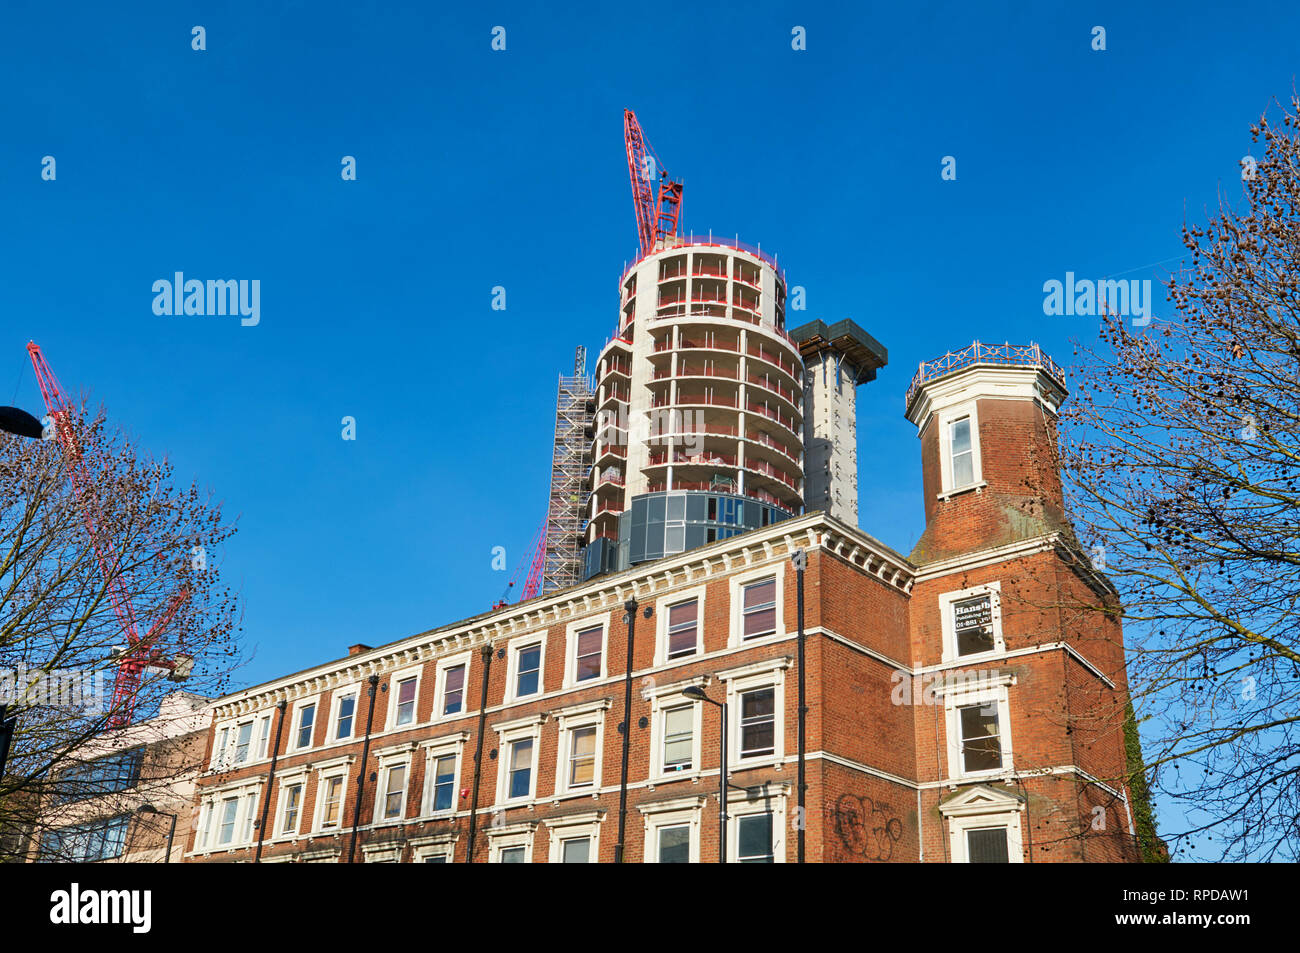 The new City North residential development under construction in Finsbury Park, viewed from Fonthill Road, North London UK - Stock Image